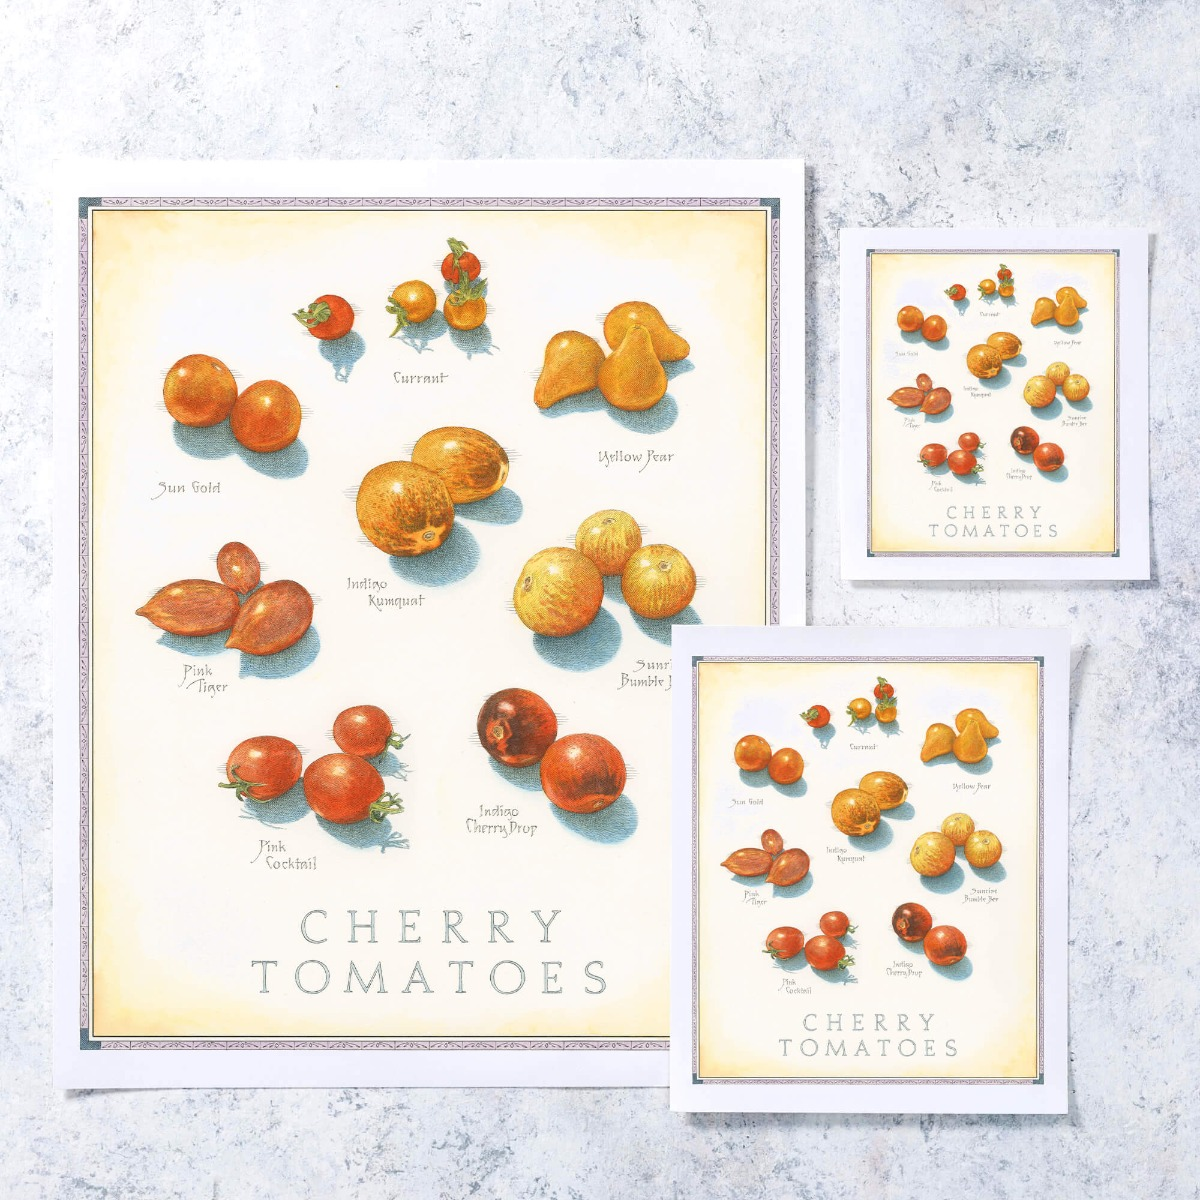 Cook's Illustrated Unframed Print: Cherry Tomatoes